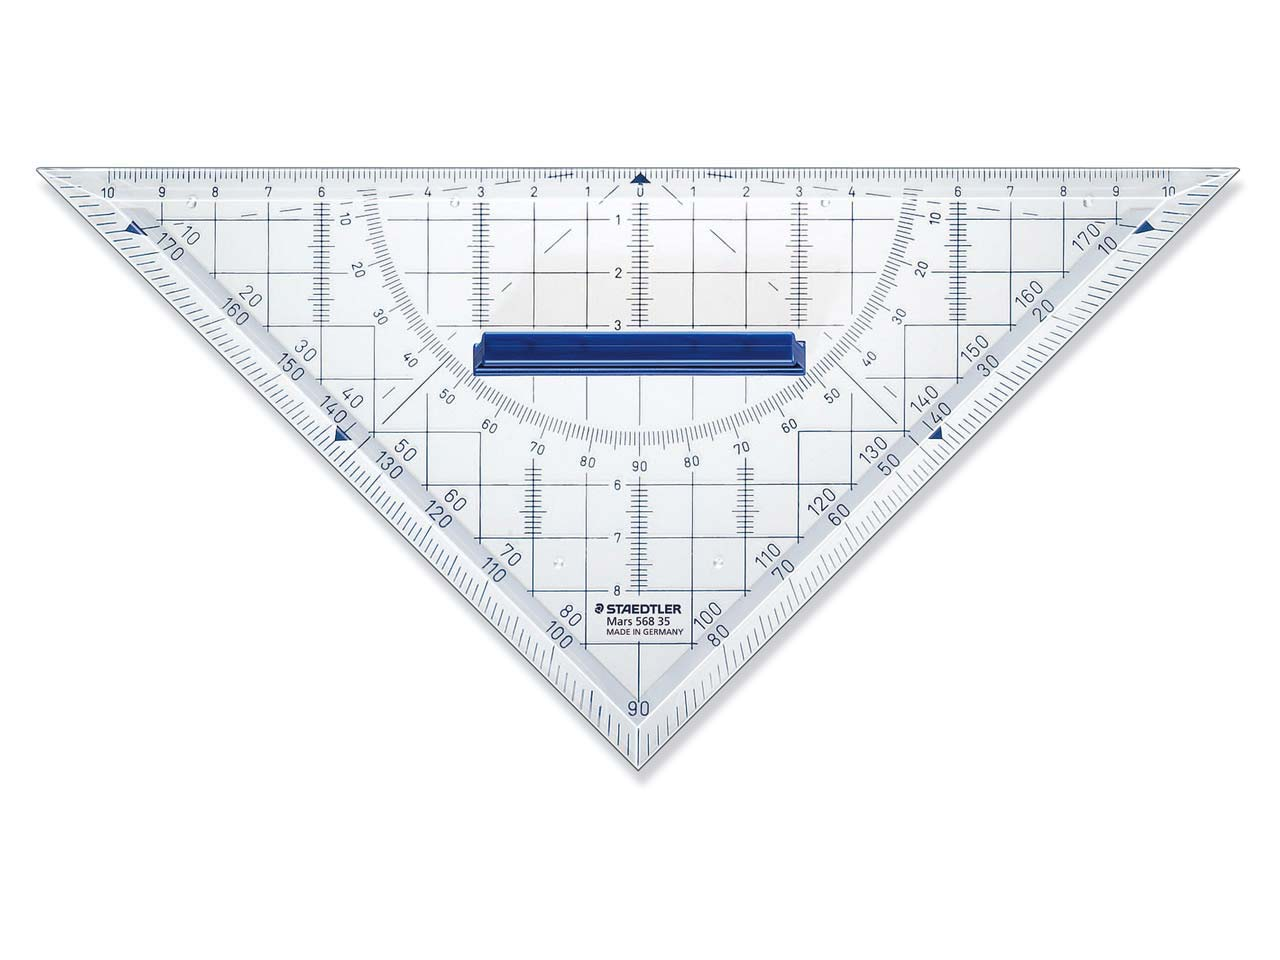 Staedtler Mars Geometry Set Square, 45 Degrees, 22cm Diagonal Length